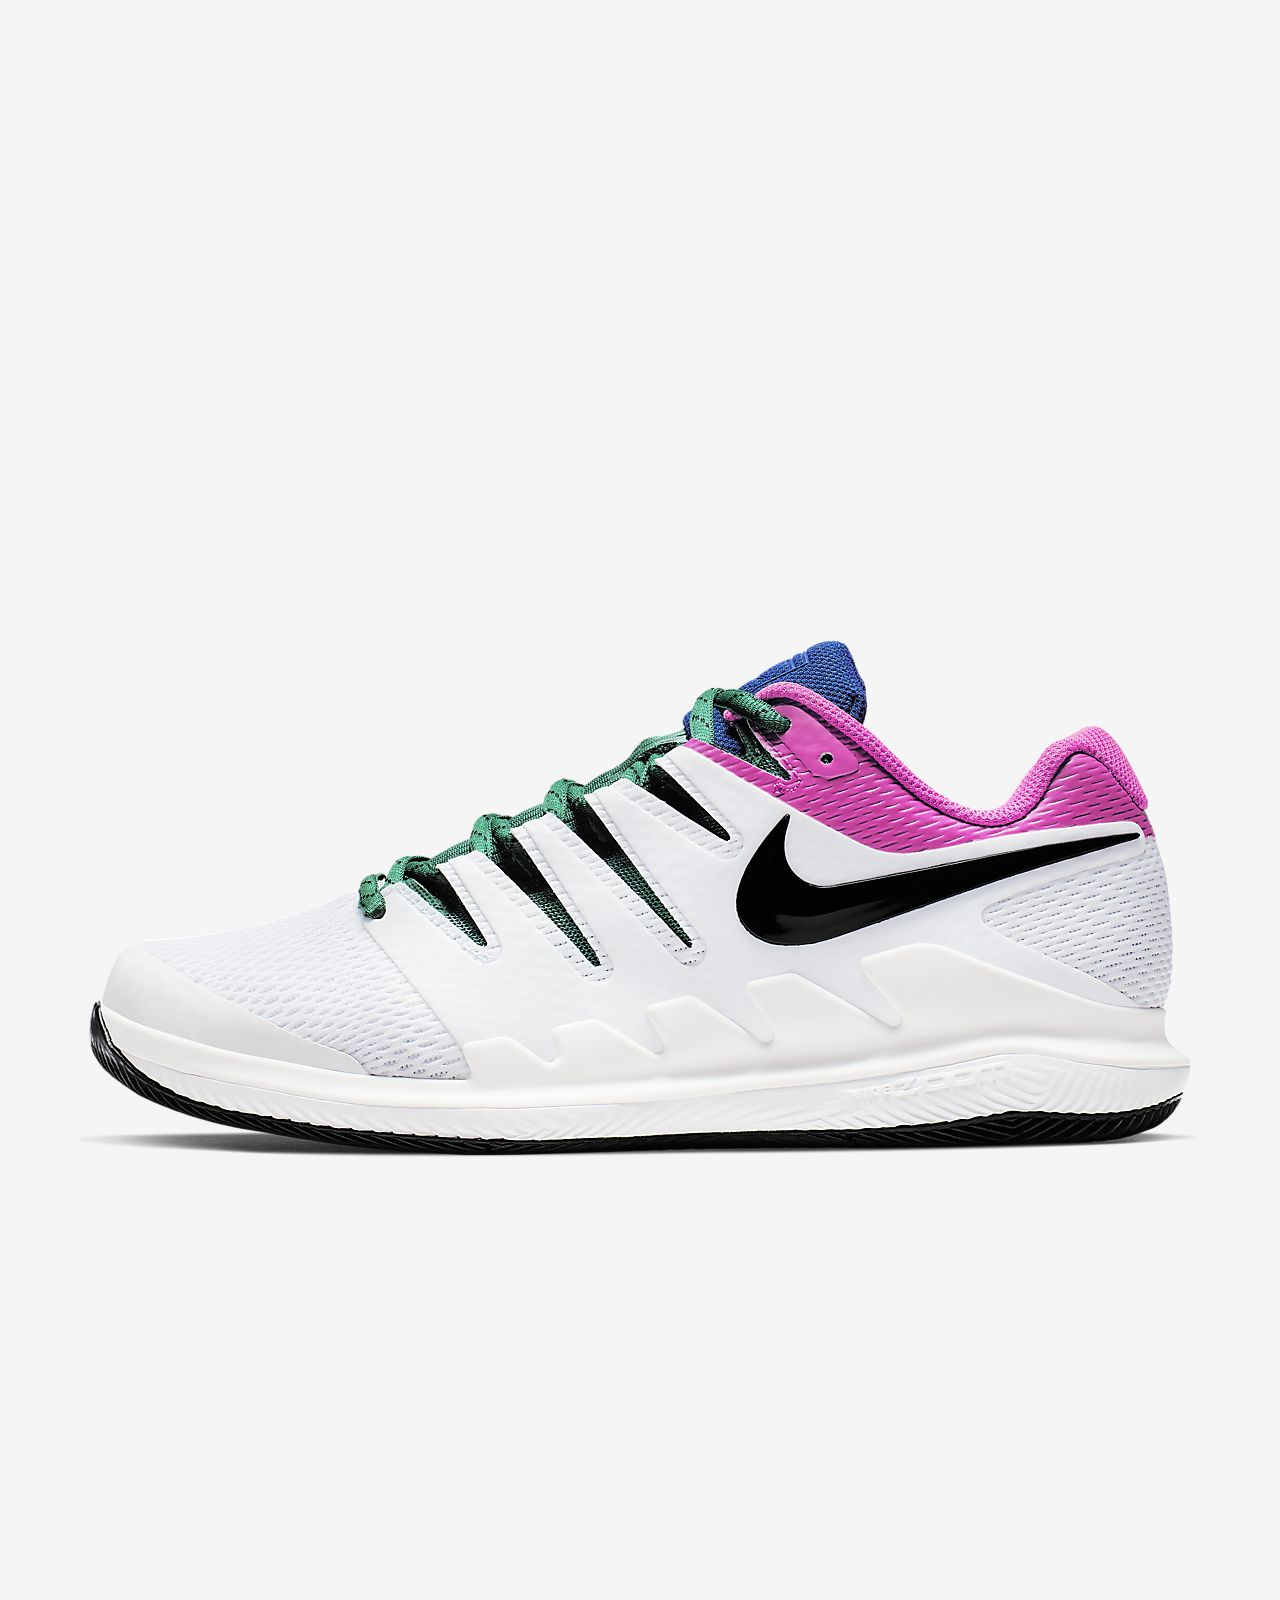 e8ebaf07a9b1 NikeCourt Air Zoom Vapor X Men s Hard Court Tennis Shoe. Nike.com